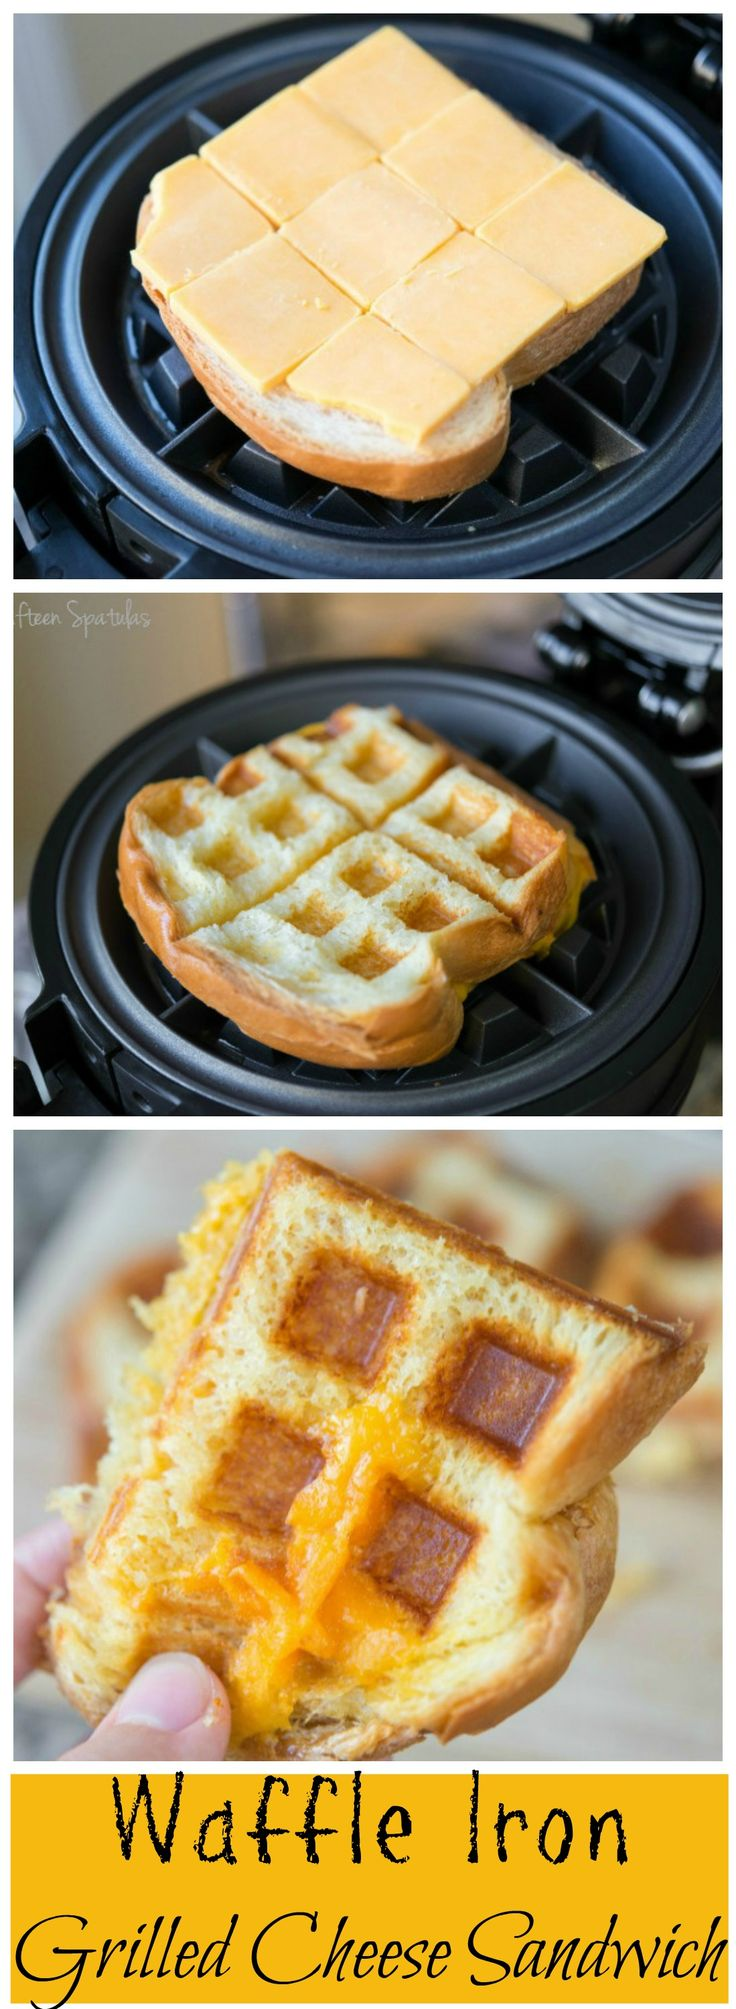 Waffle Iron Grilled Cheese Sandwich. OMG I am so doing this the next time we have grilled cheese!